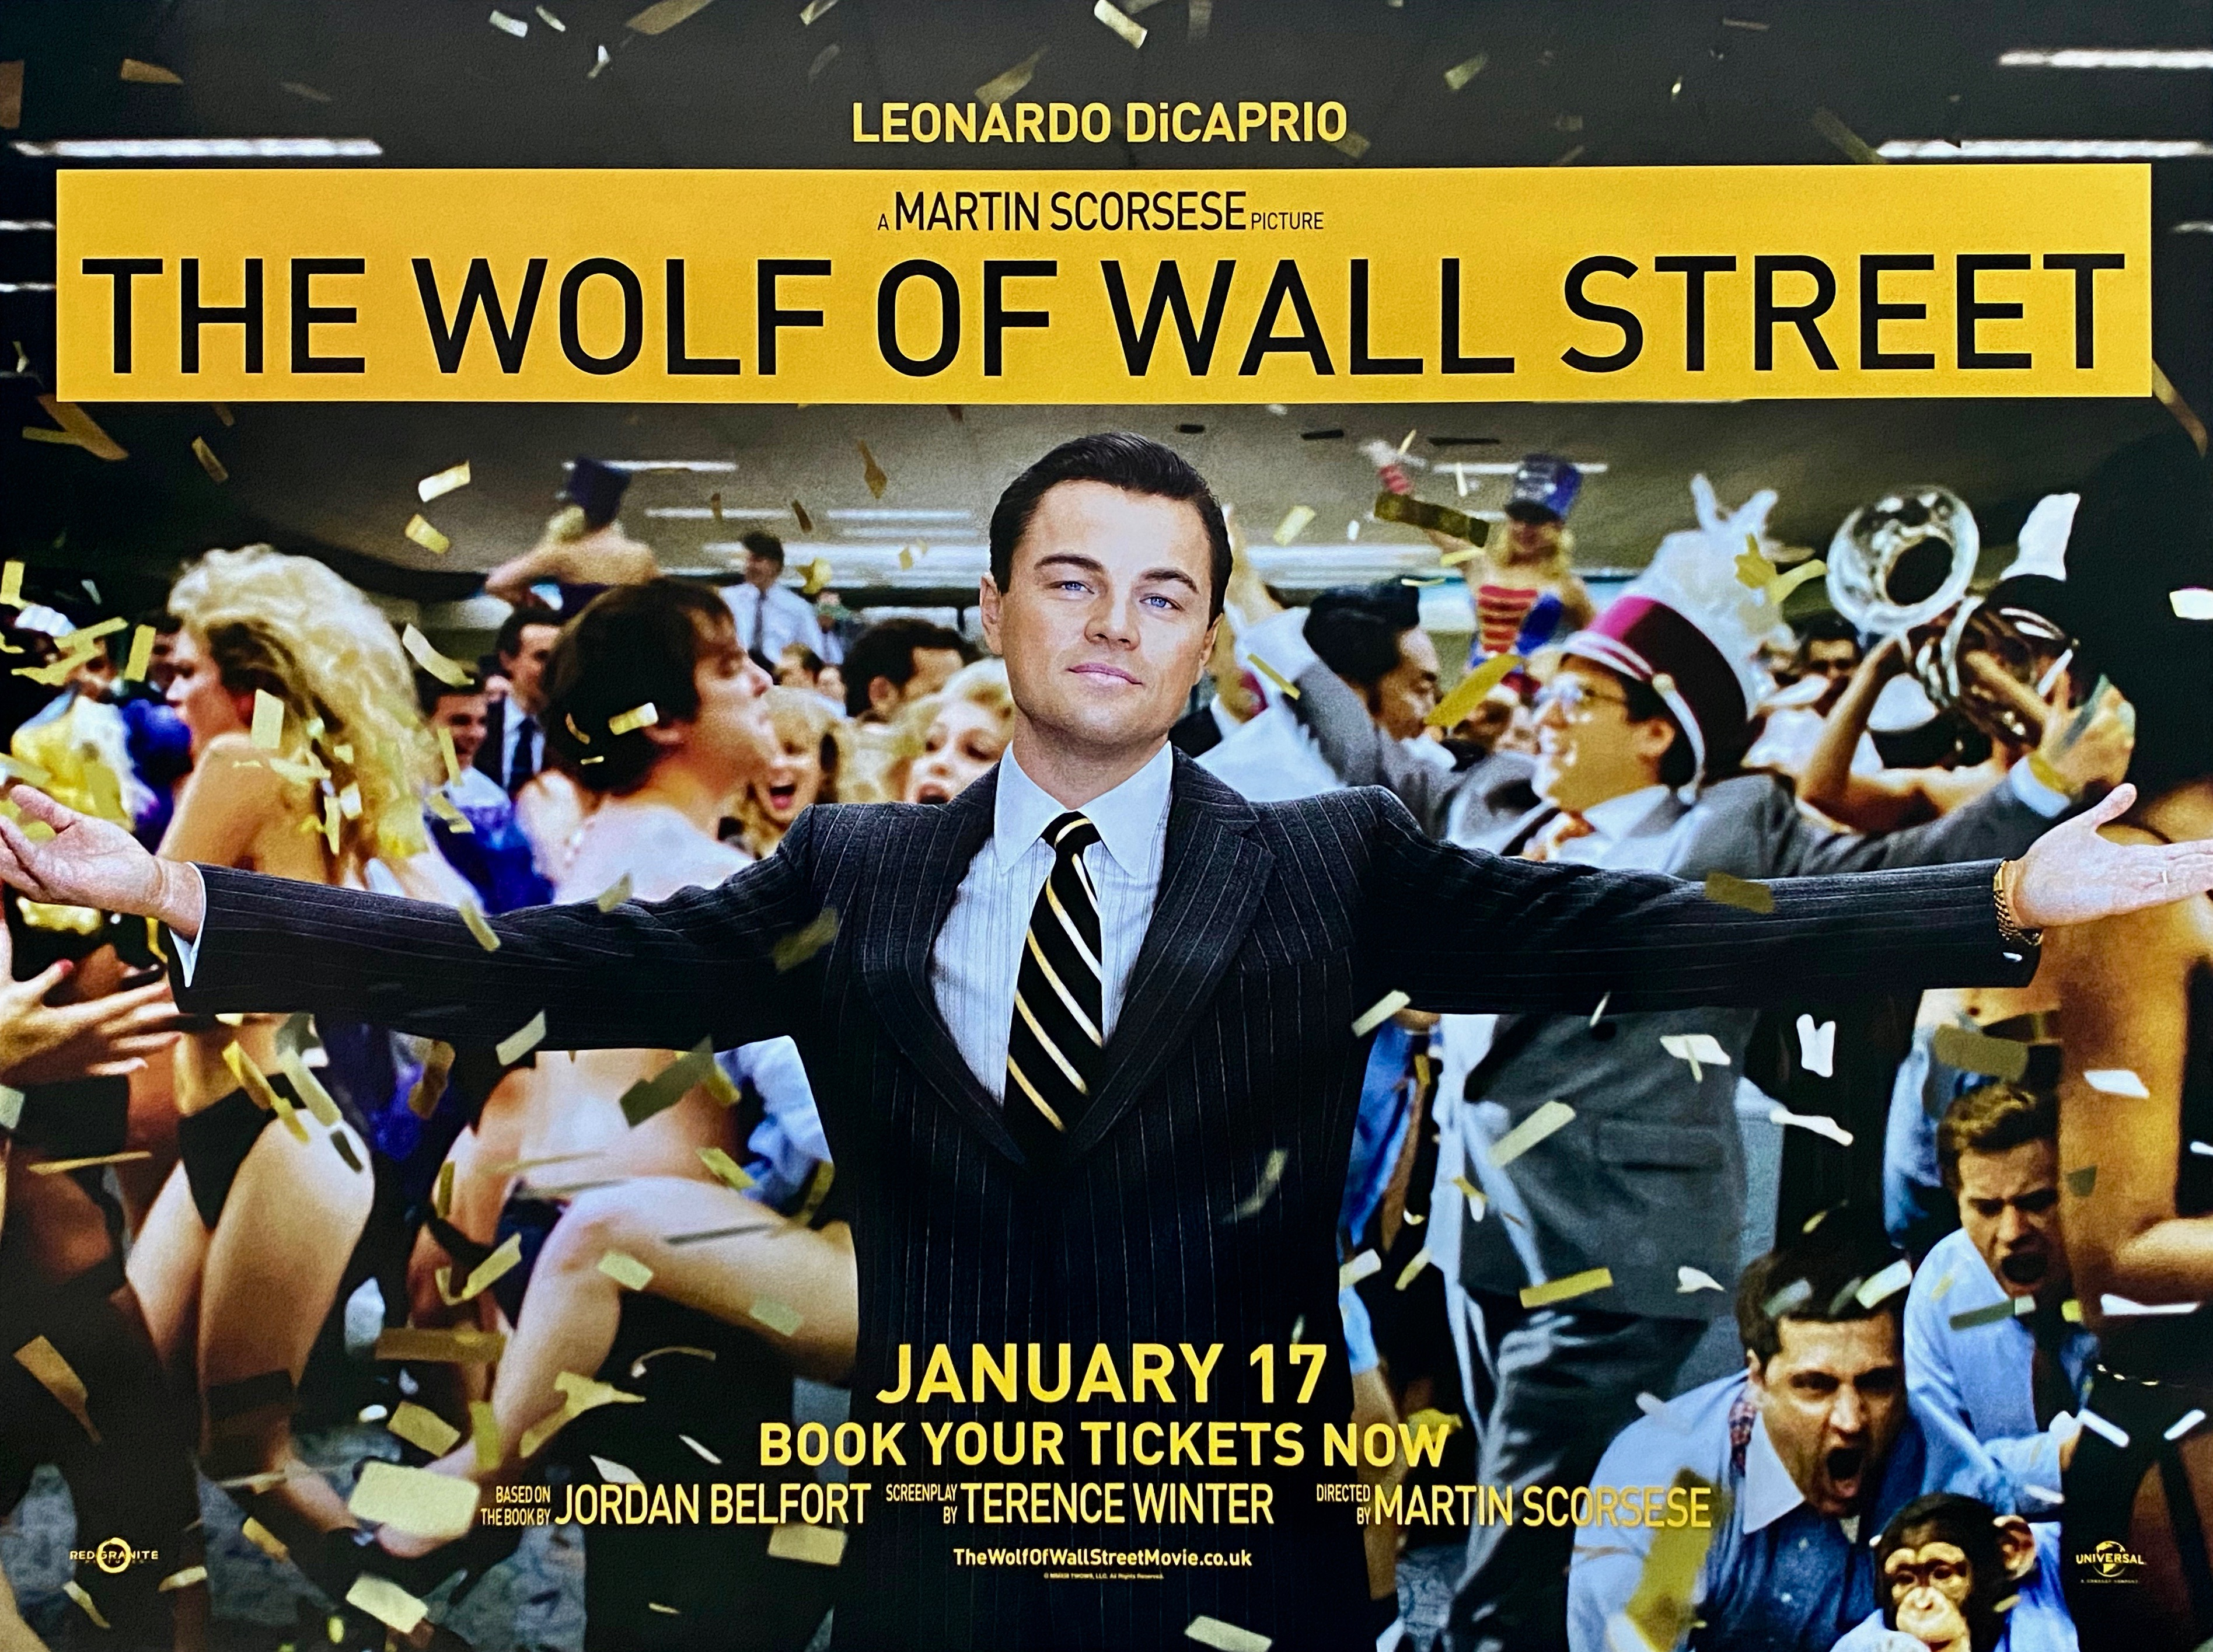 Original The Wolf of Wall Street Movie Poster - Leonardo DiCaprio